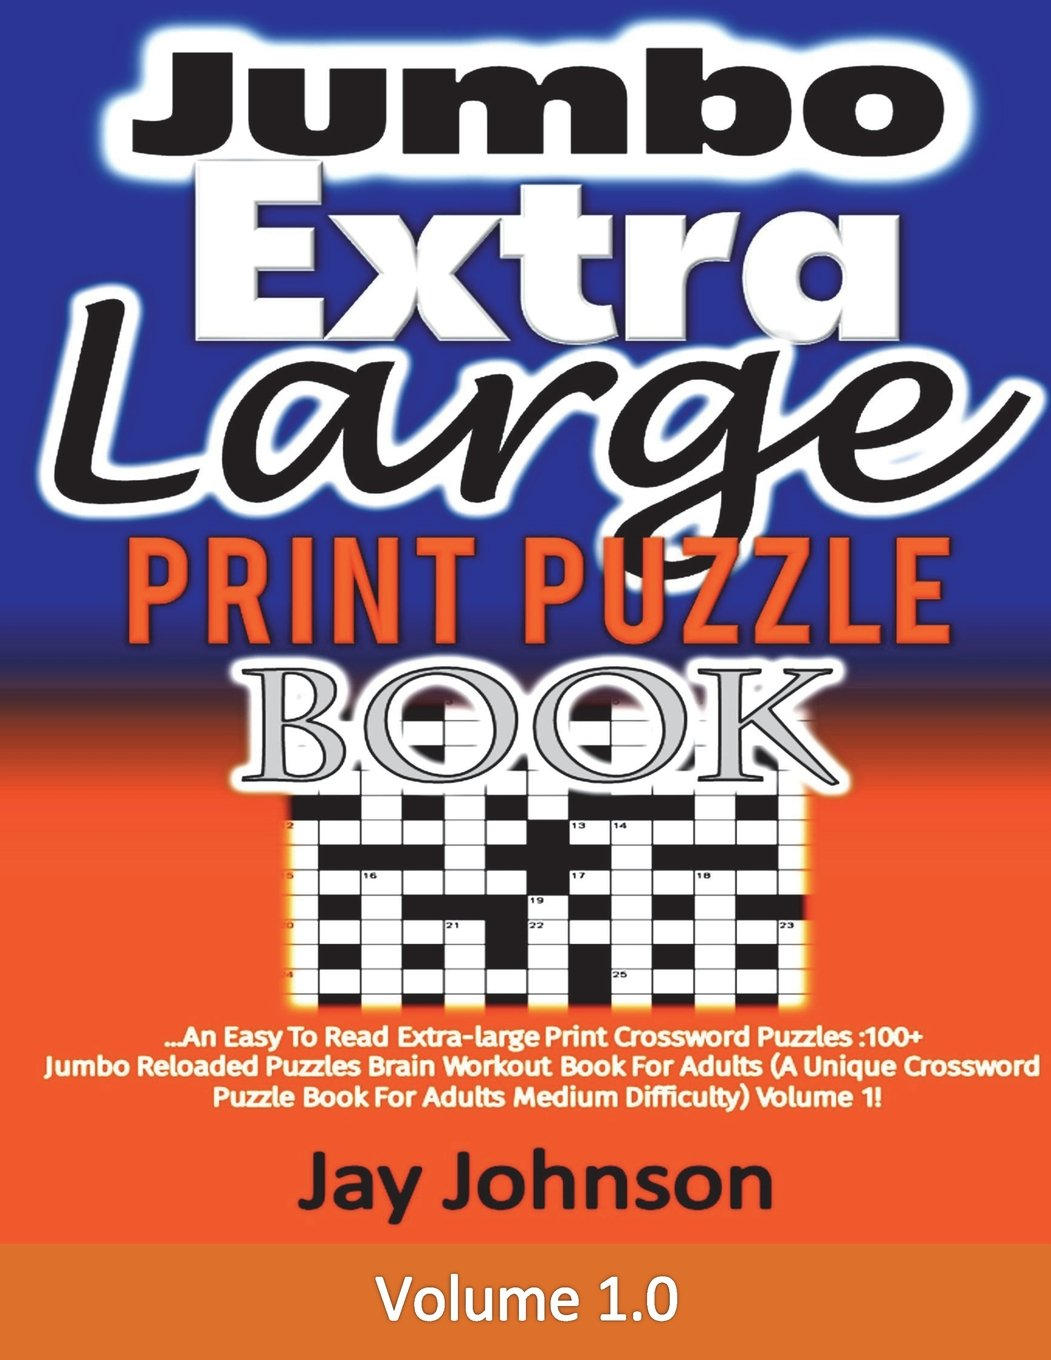 - Jumbo Extra Large Print Crosswords Puzzle Book: An Easy To Read